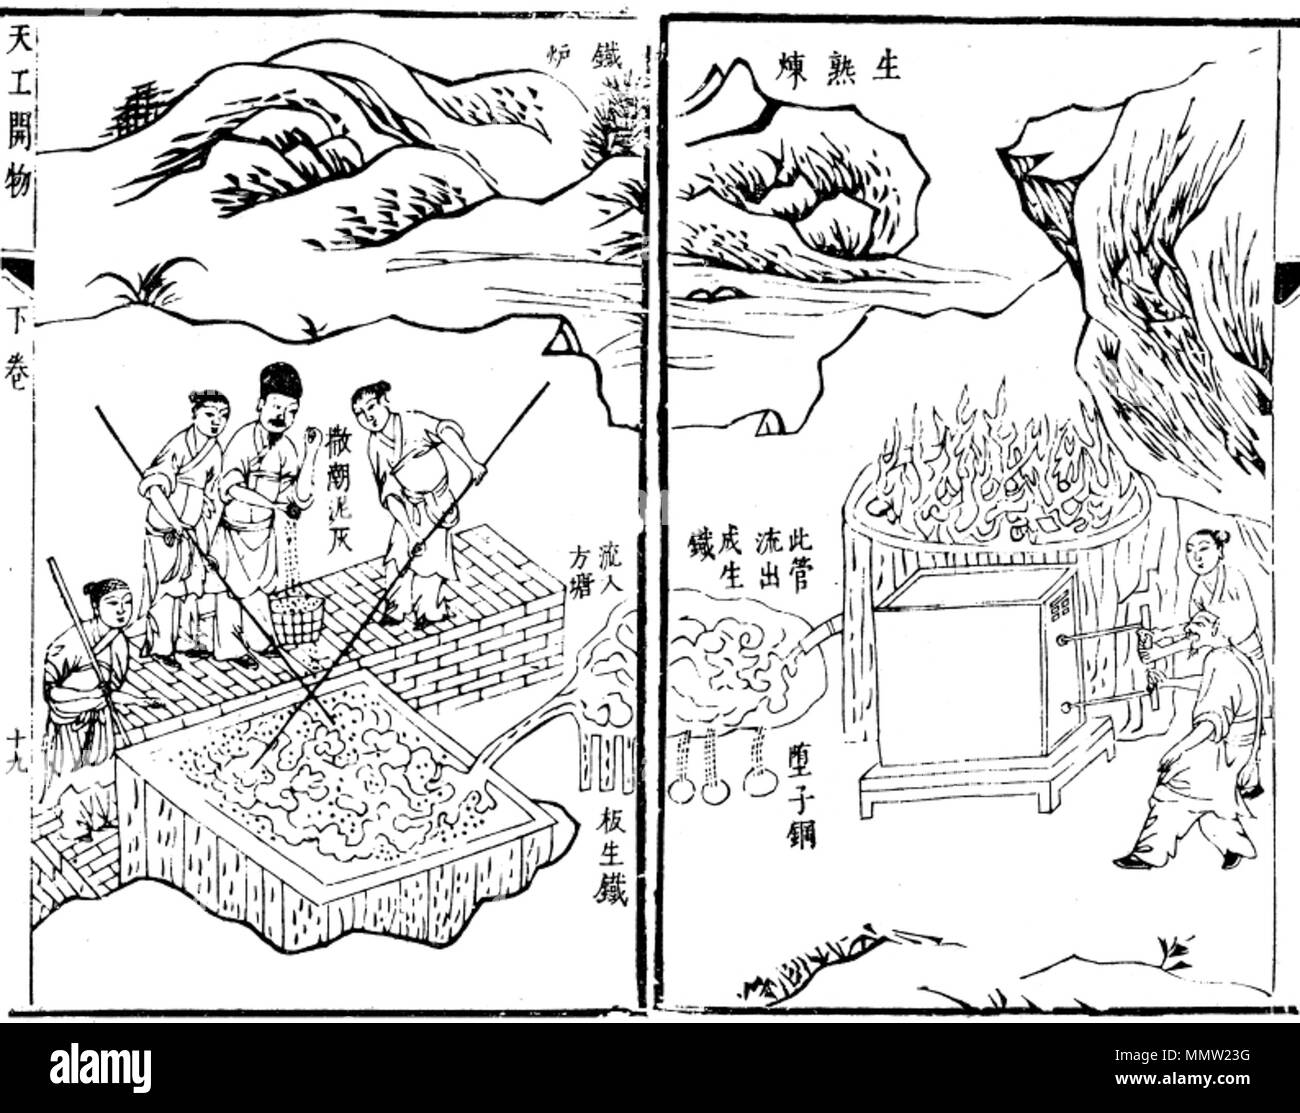 . English: Chinese iron workers smelting iron ore to make pig iron and wrought iron in 16th century. The left half of the illustration shows a fining process, while the right half displays men operating a blast furnace. The fining process operates a reacting powder (the wuchaoni) and work on molted pig iron (see Don. Wagner analysis): this is a specific fining process, very different form later chinese puddling processes. This illustration is an original from the Tiangong Kaiwu encyclopedia printed in 1637, written by the Ming Dynasty encyclopedist Song Yingxing (1587-1666). Picture taken on t - Stock Image